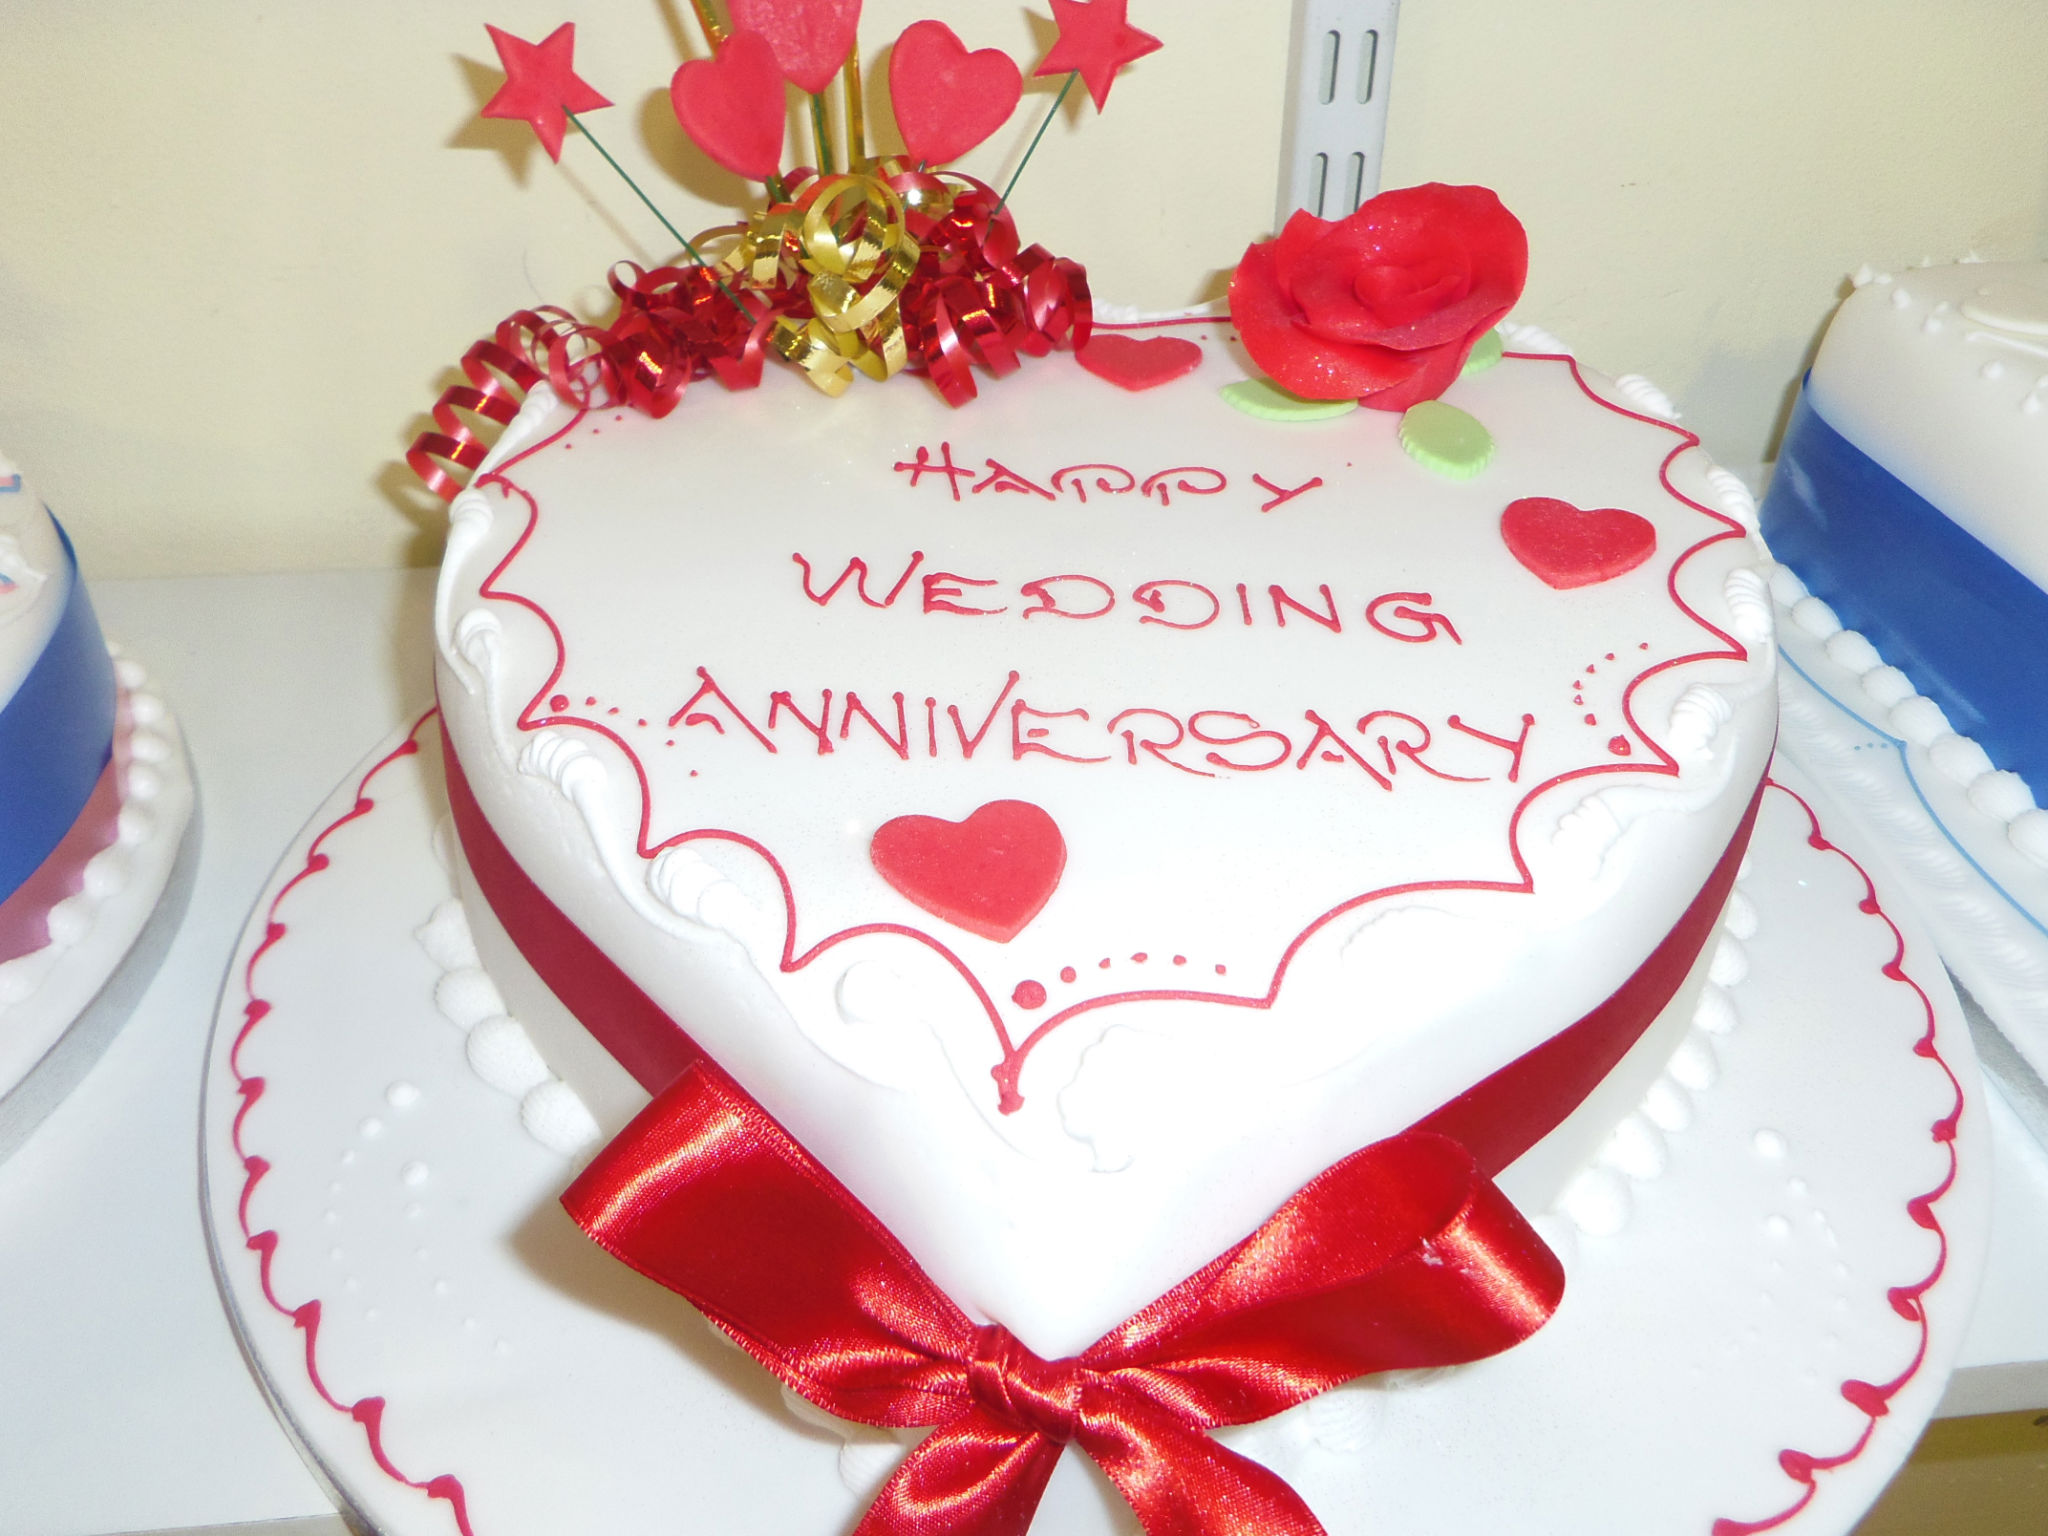 Best Happy Wedding Anniversary Wishes Cards